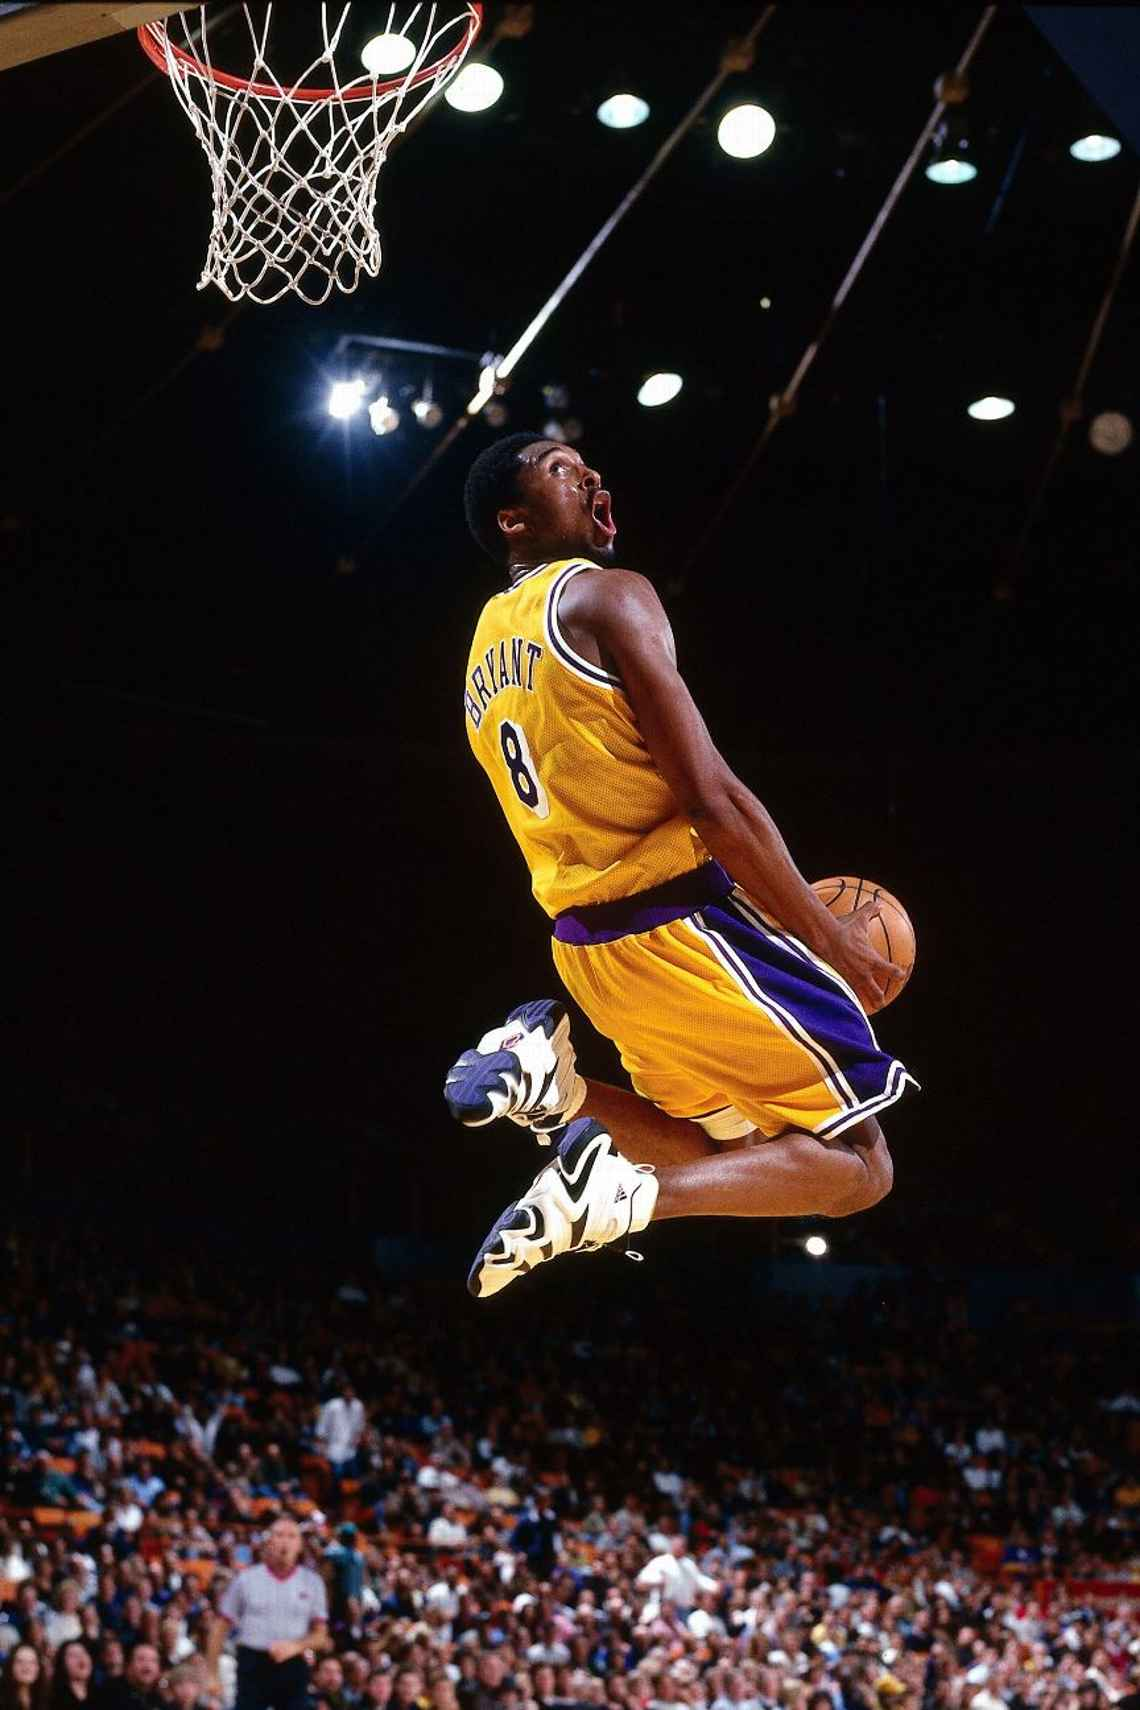 Kobe Bryant goes up for a reverse slam dunk against the Minnesota Timberwolves during at Staples Center in 1998.